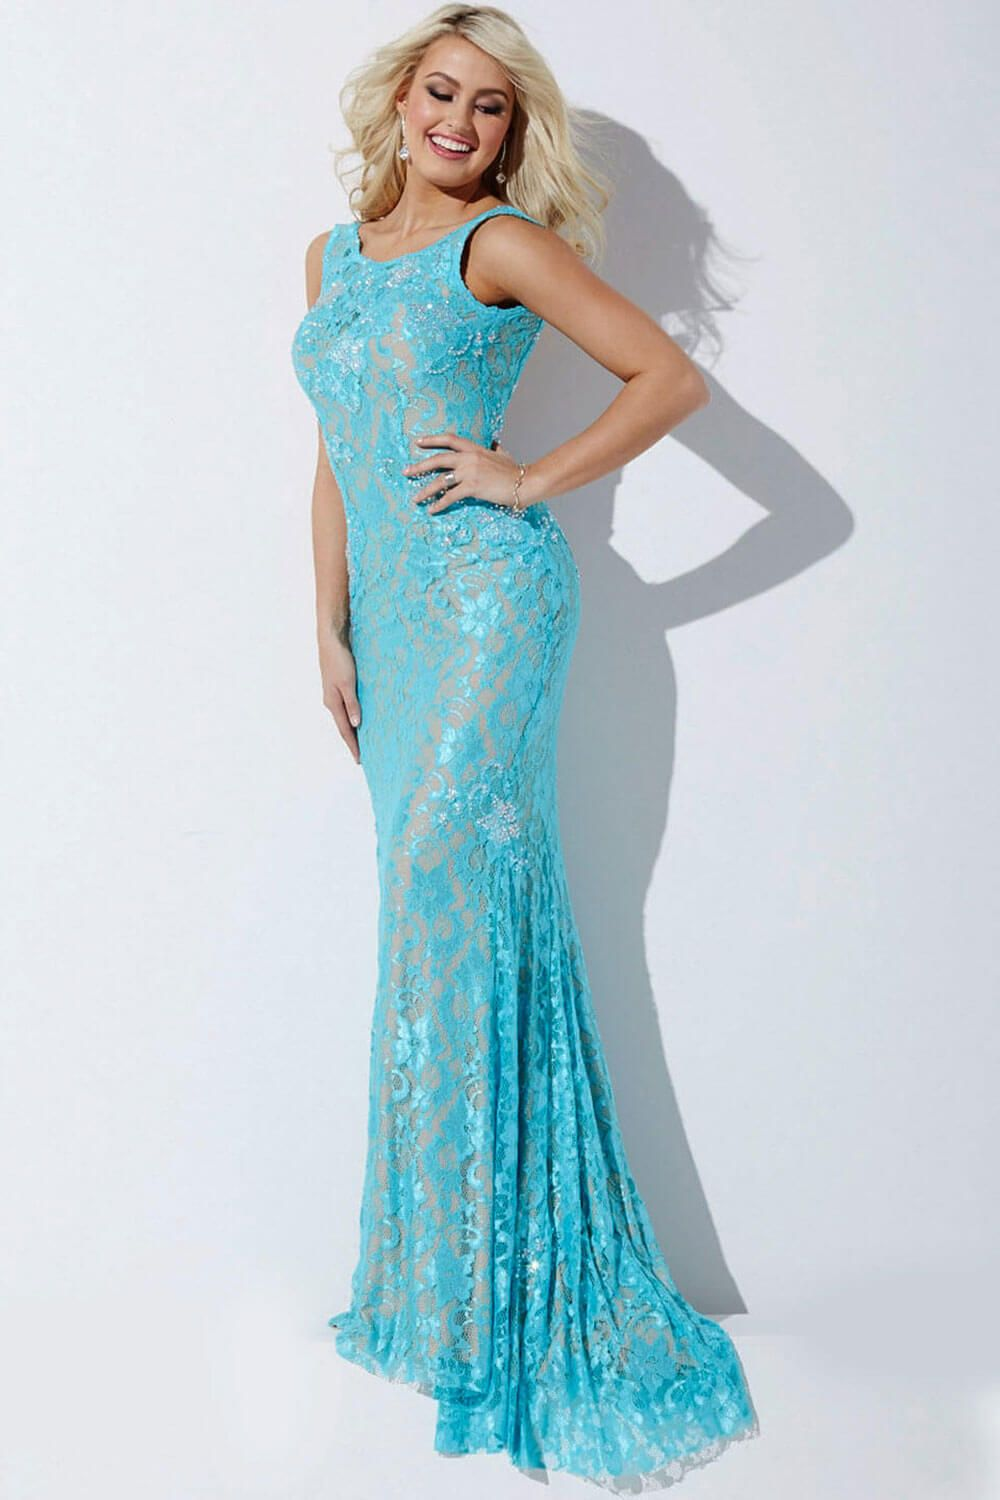 My dress :0 xx | all things teal, turquise, mint and aquamarine ...